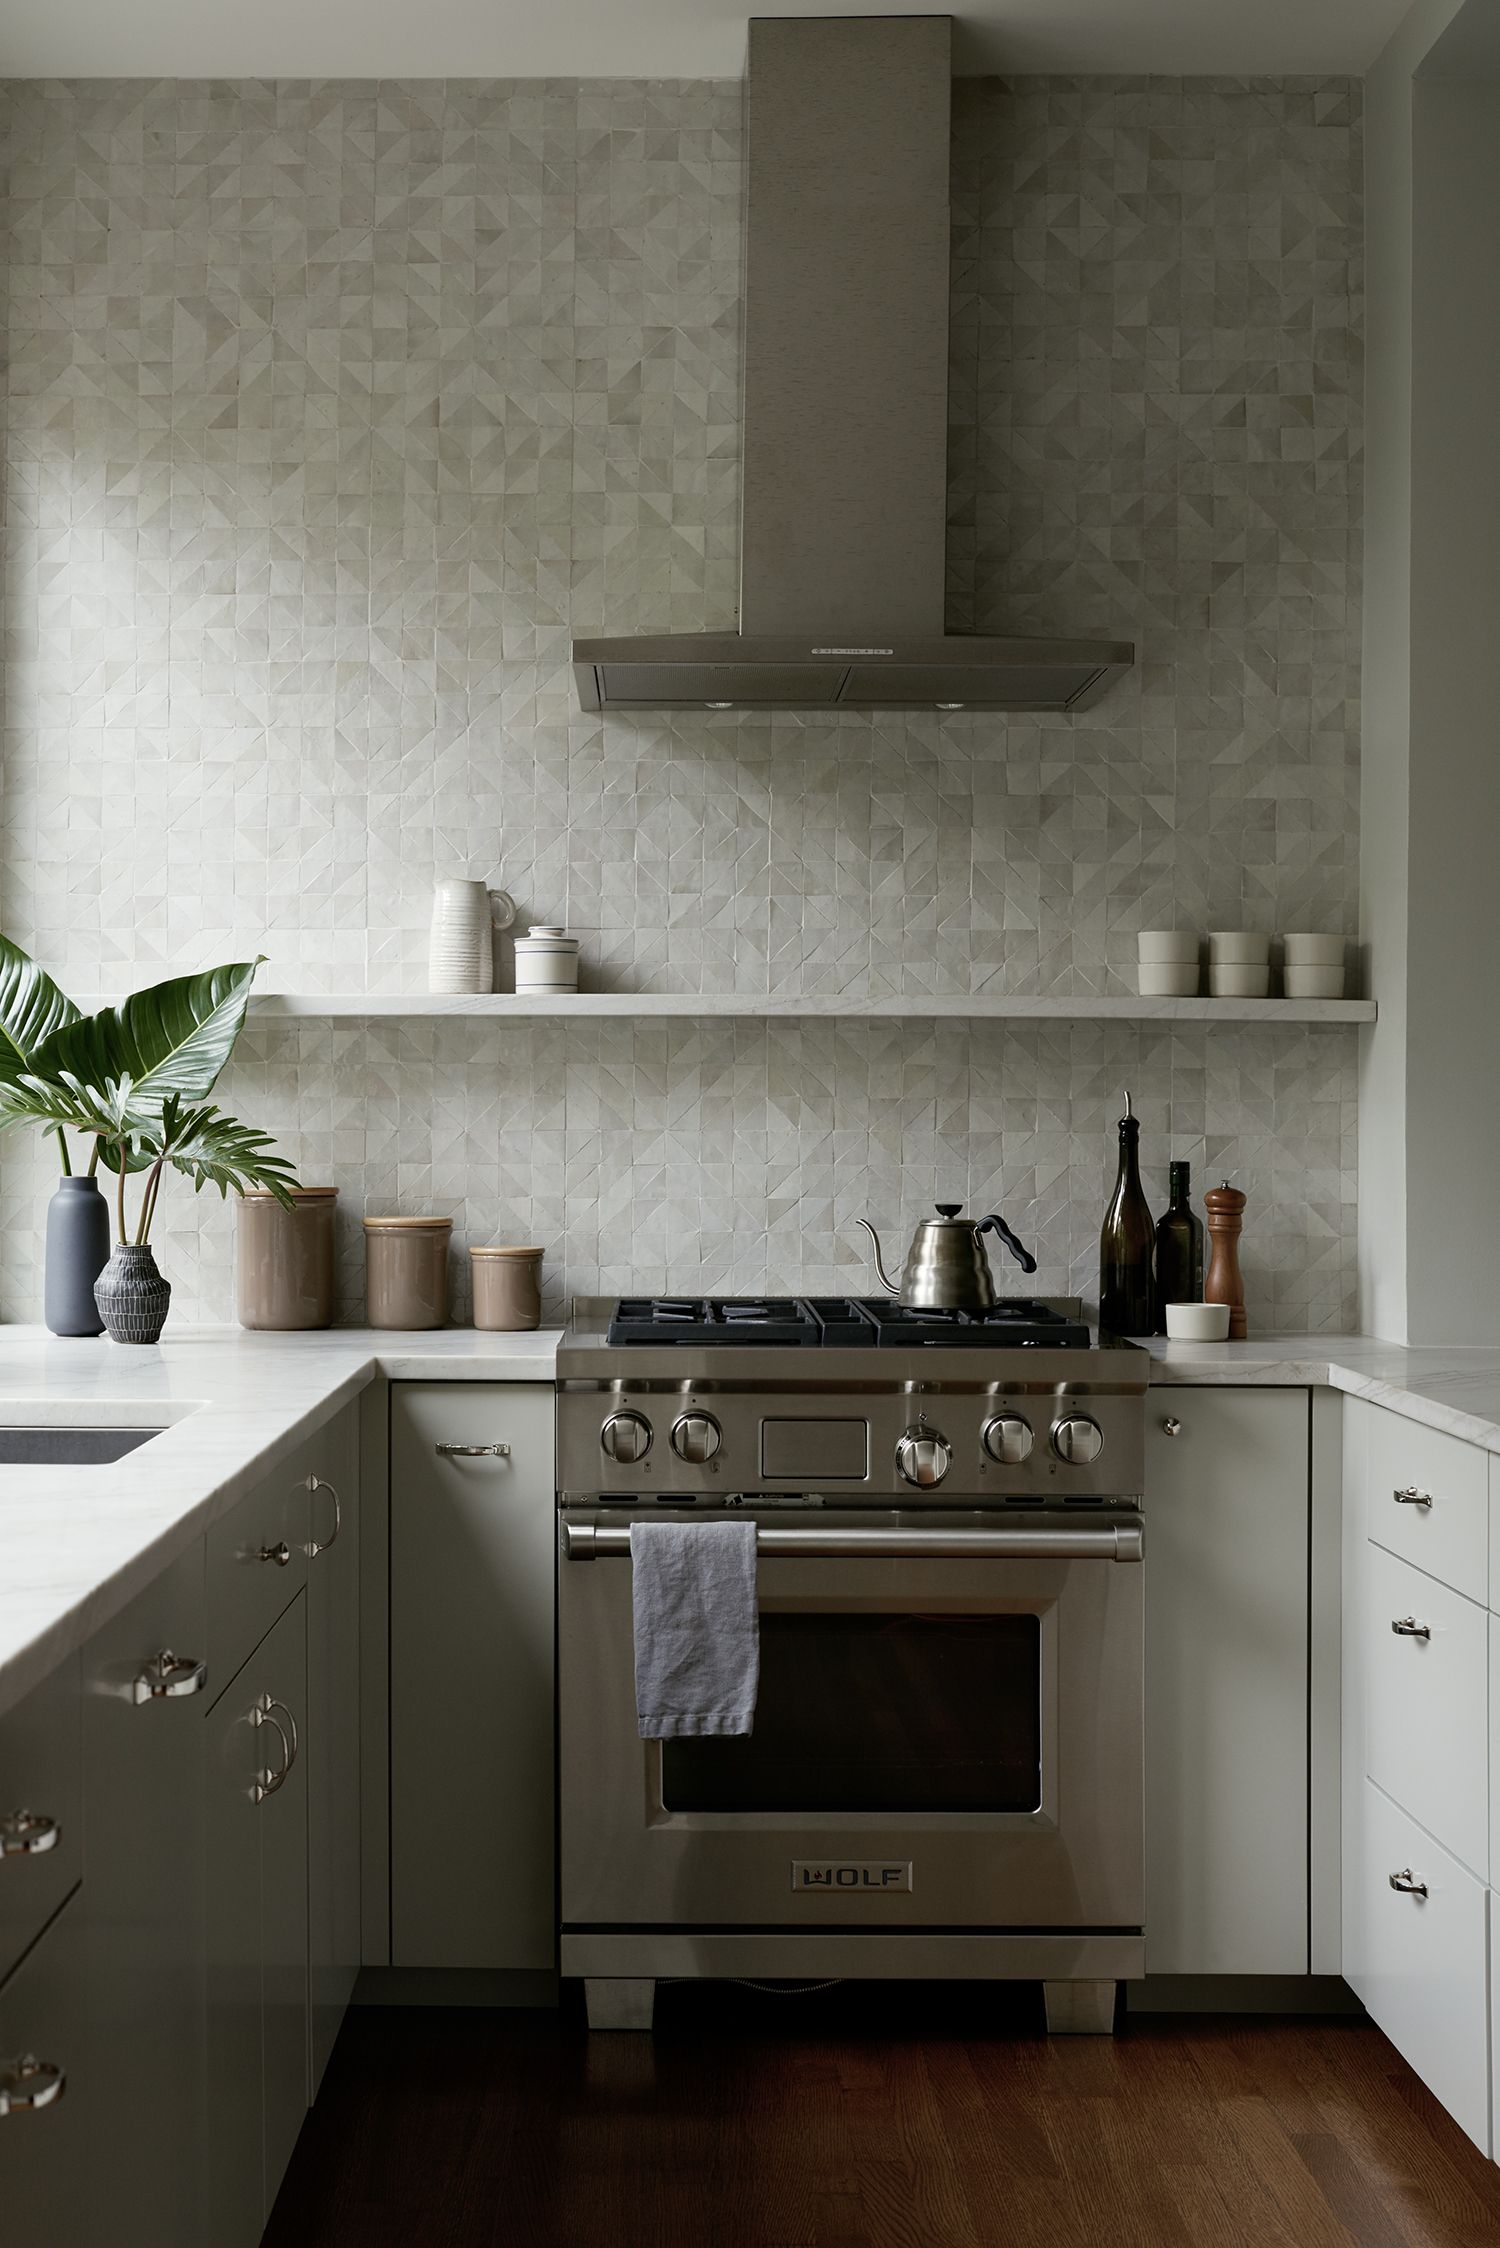 Serenity Now Creating Calm And Luxe In A Brooklyn Townhouse Kitchen Inspirations Kitchen Kitchen Design